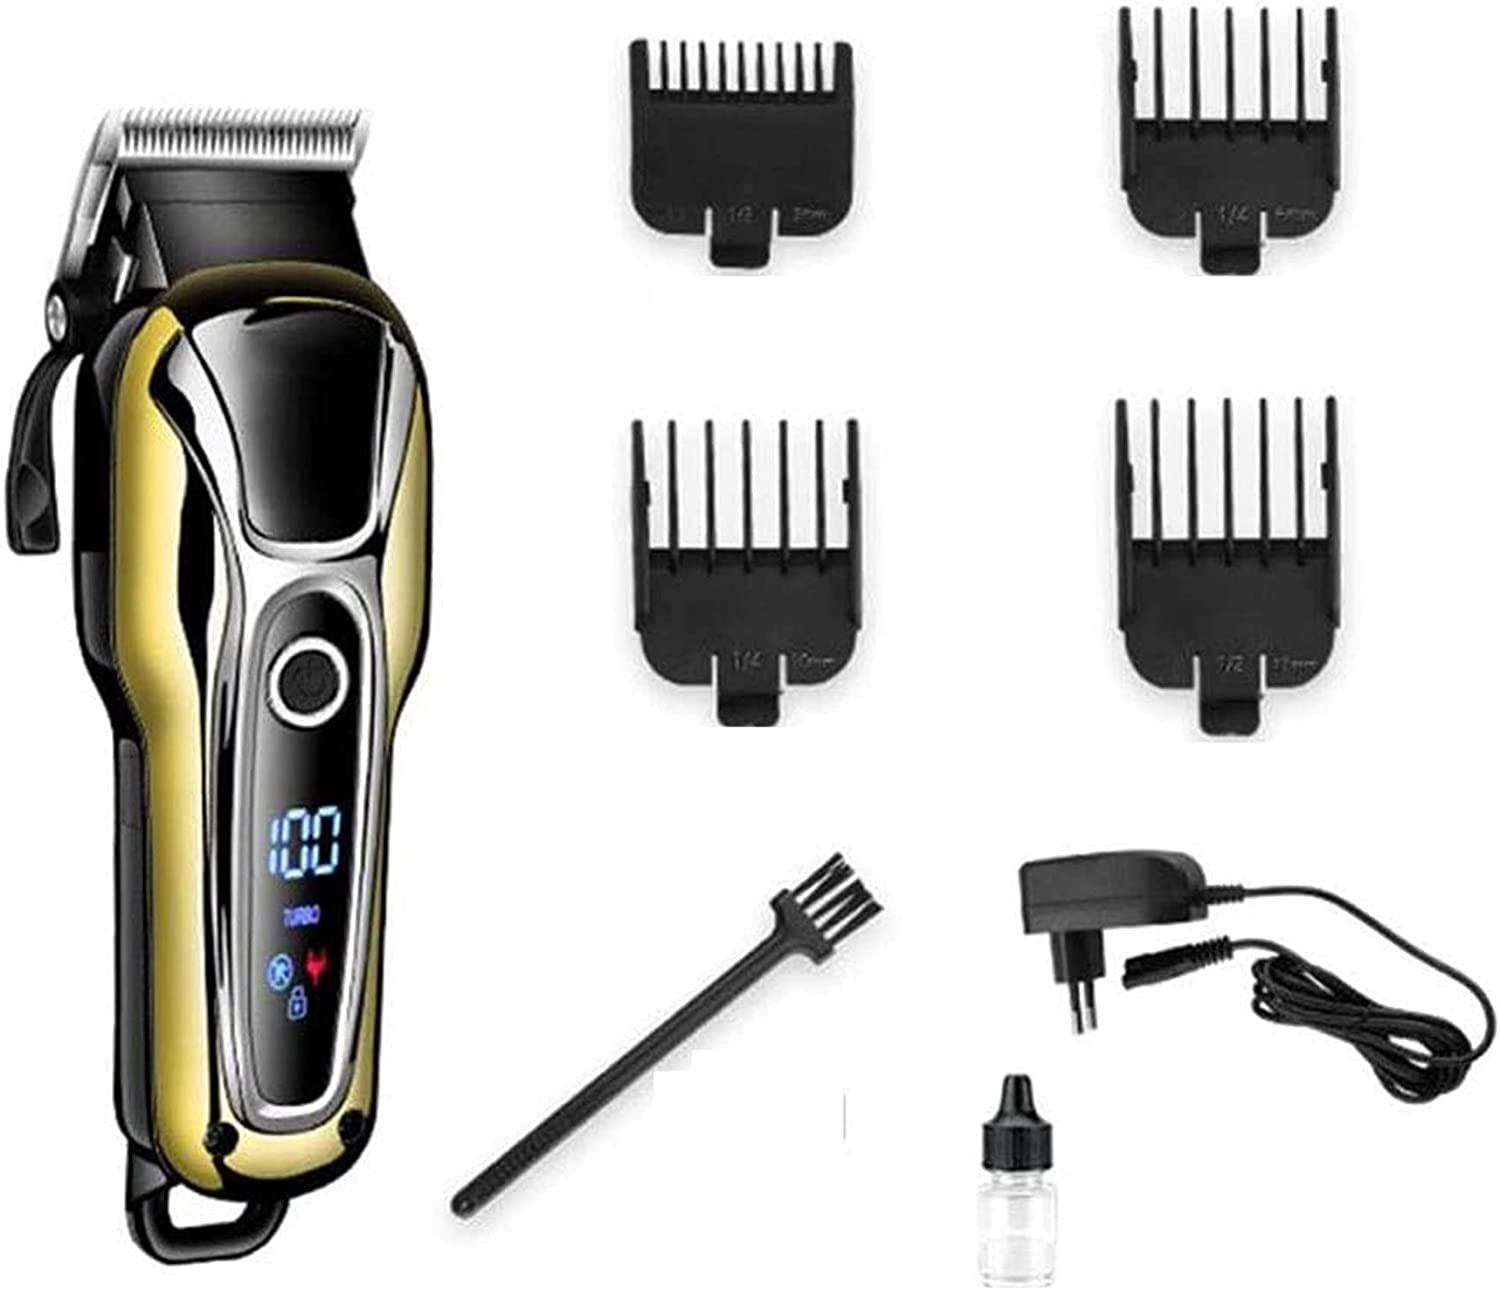 SGADSH Hair Clippers Sales results No. 1 Men Men's Clipper Professional Cl Lowest price challenge